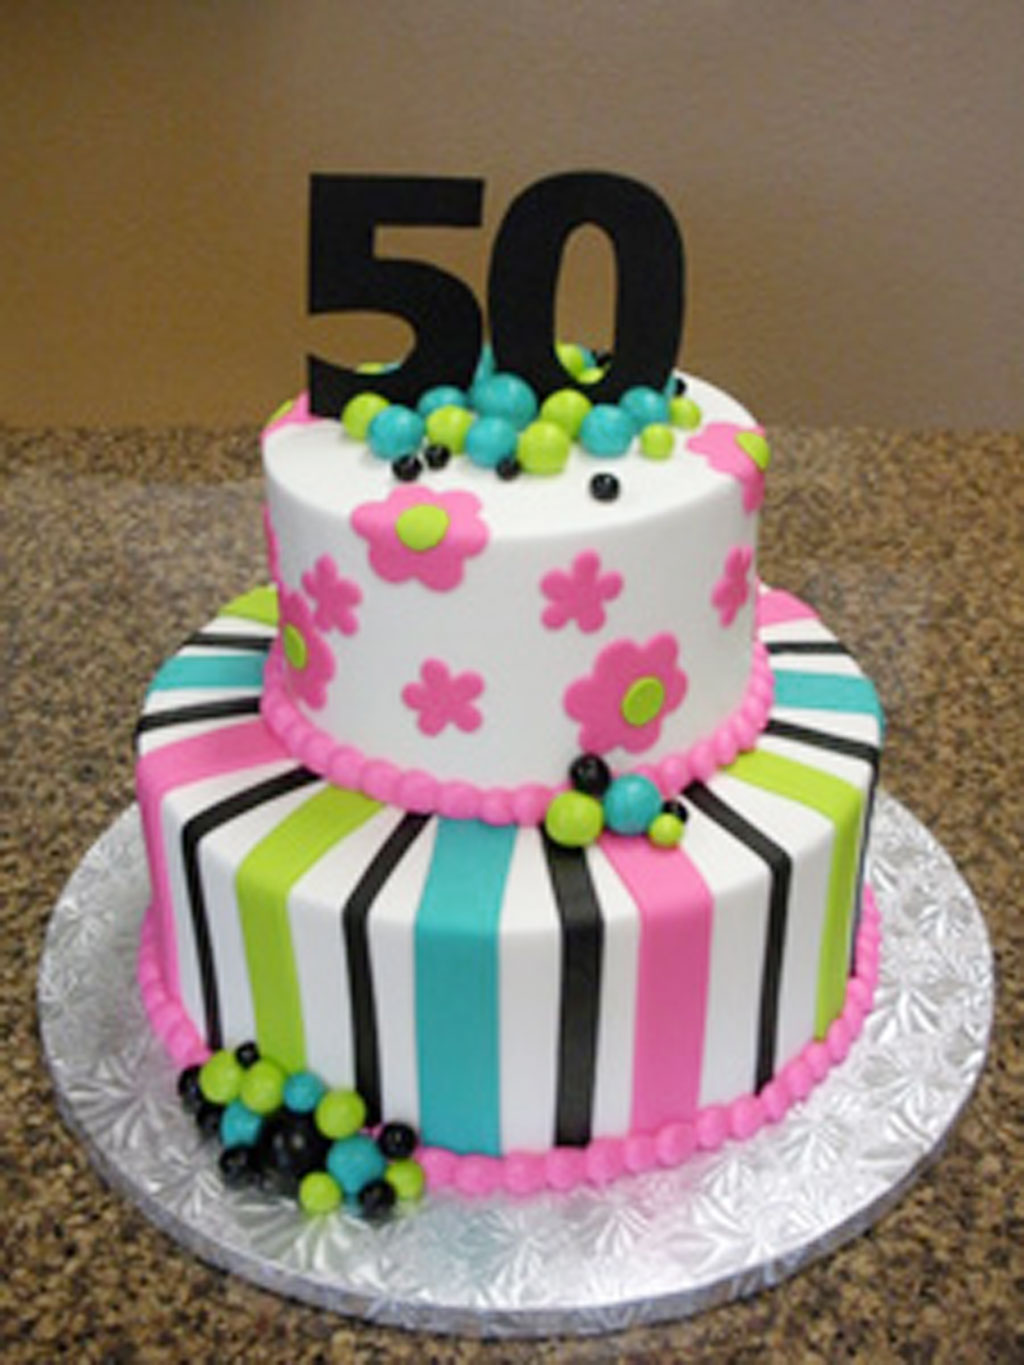 Birthday Cake Ideas And Pictures : 50th Birthday Cakes Pictures For Women Birthday Cake ...